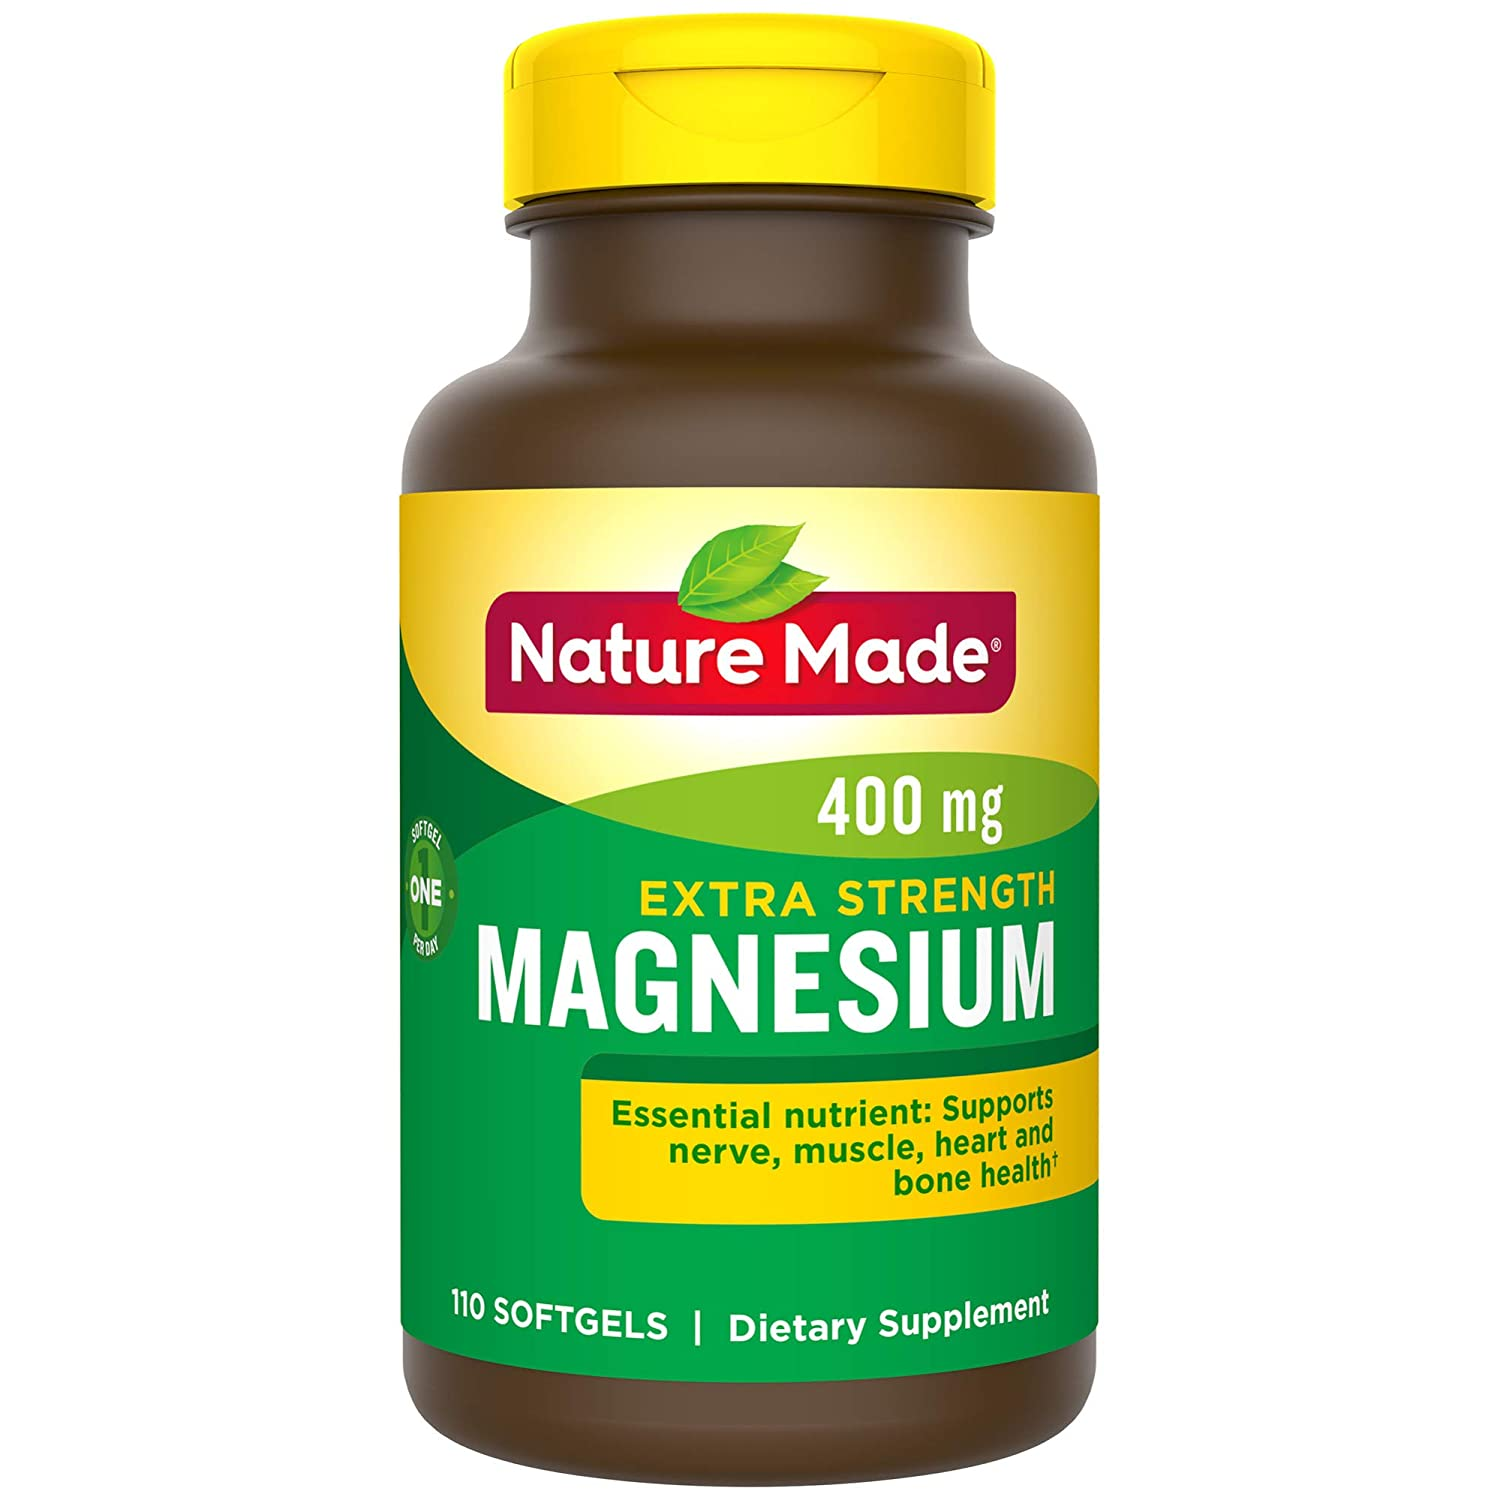 Nature Made Extra Strength Magnesium Oxide 400 mg Softgels, 110 Count for Nutrition Support (Packaging May Vary)